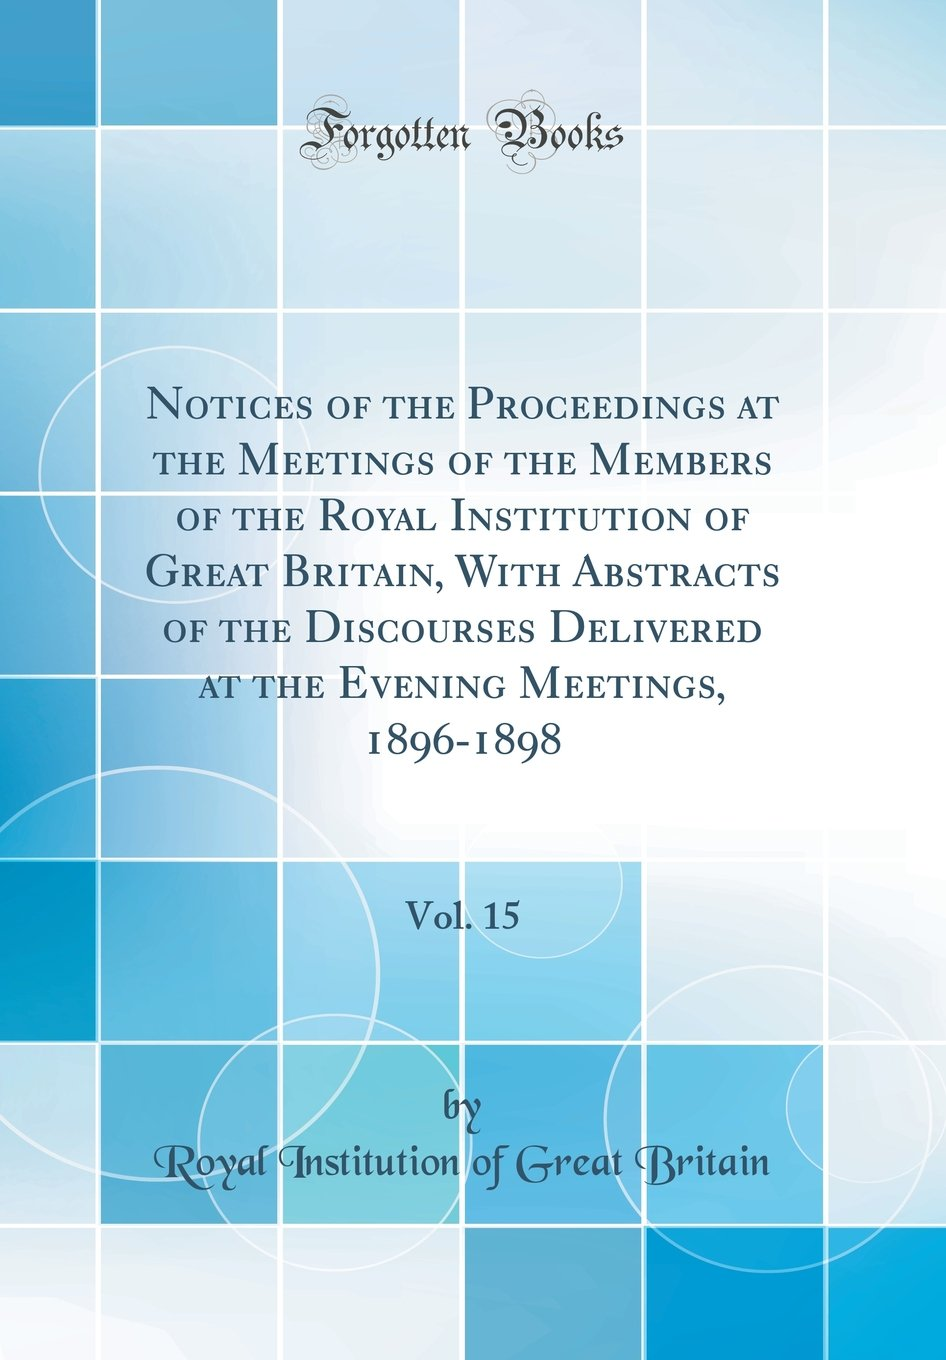 Notices of the Proceedings at the Meetings of the Members of the Royal Institution of Great Britain, with Abstracts of the Discourses Delivered at the ... 1896-1898, Vol. 15 (Classic Reprint) PDF